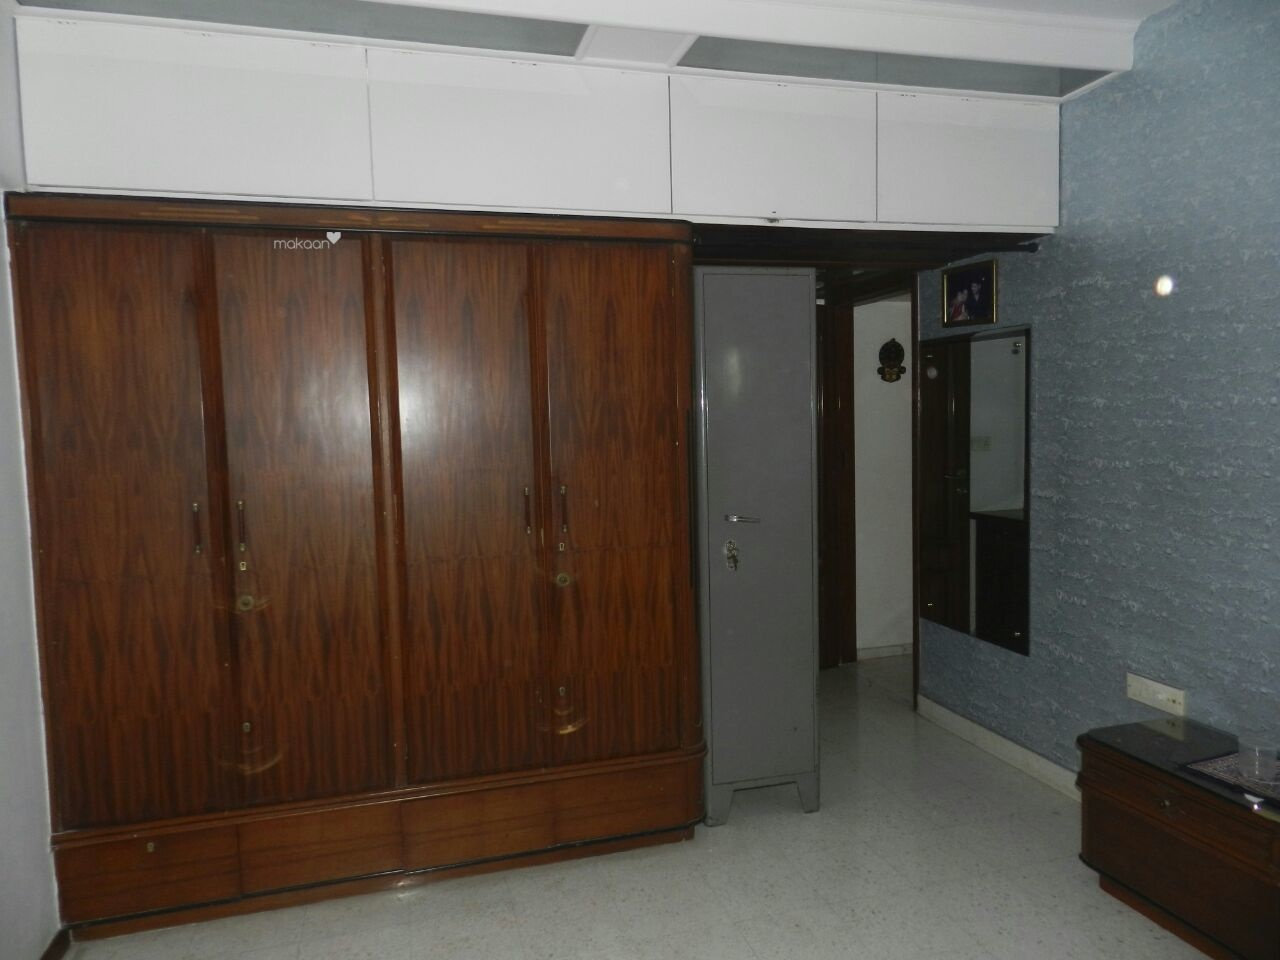 1800 sq ft 3BHK 3BHK+3T (1,800 sq ft) + Servant Room Property By Black and White Aventura In Great Eastern Royale, Tardeo